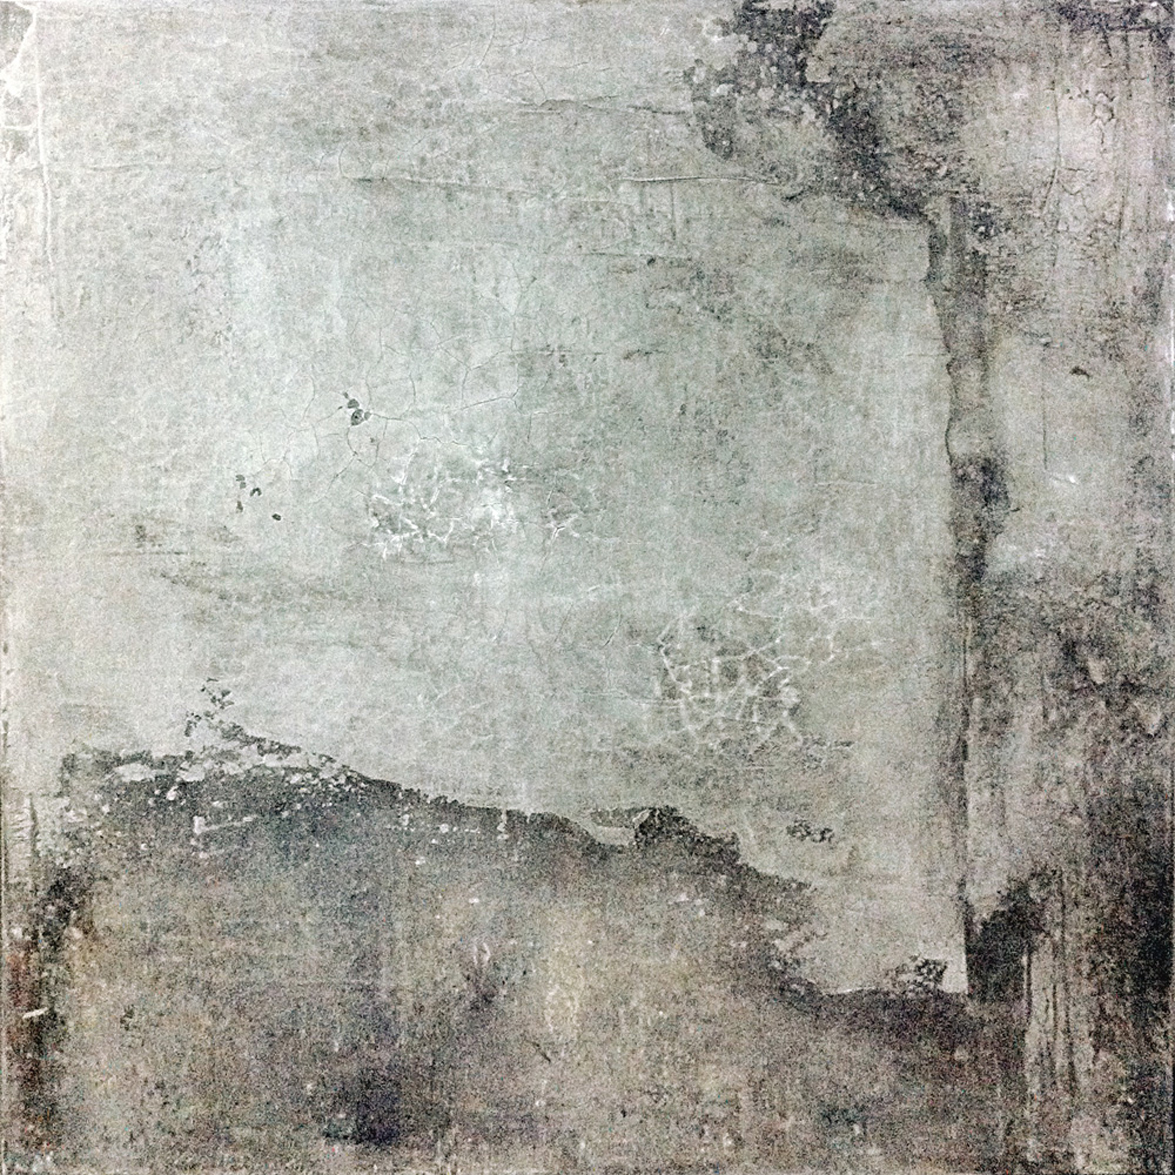 Berlin Auguststrasse, 2012, 01, 100 x 100 cm, Acrylic on Canvas